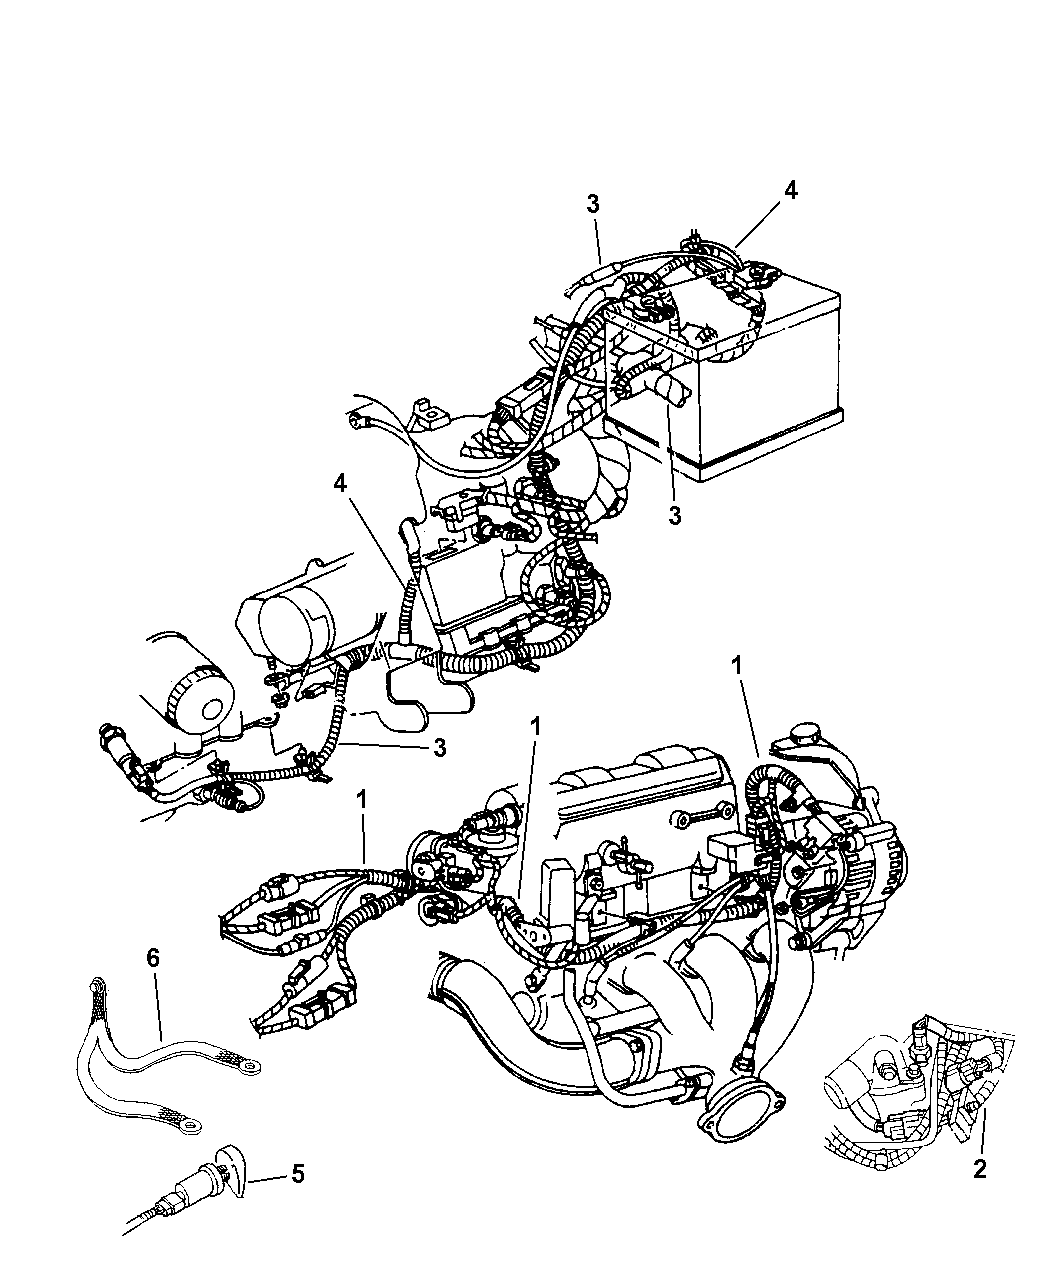 1999 Dodge Intrepid Wiring Engine Related Parts 99 Diagram